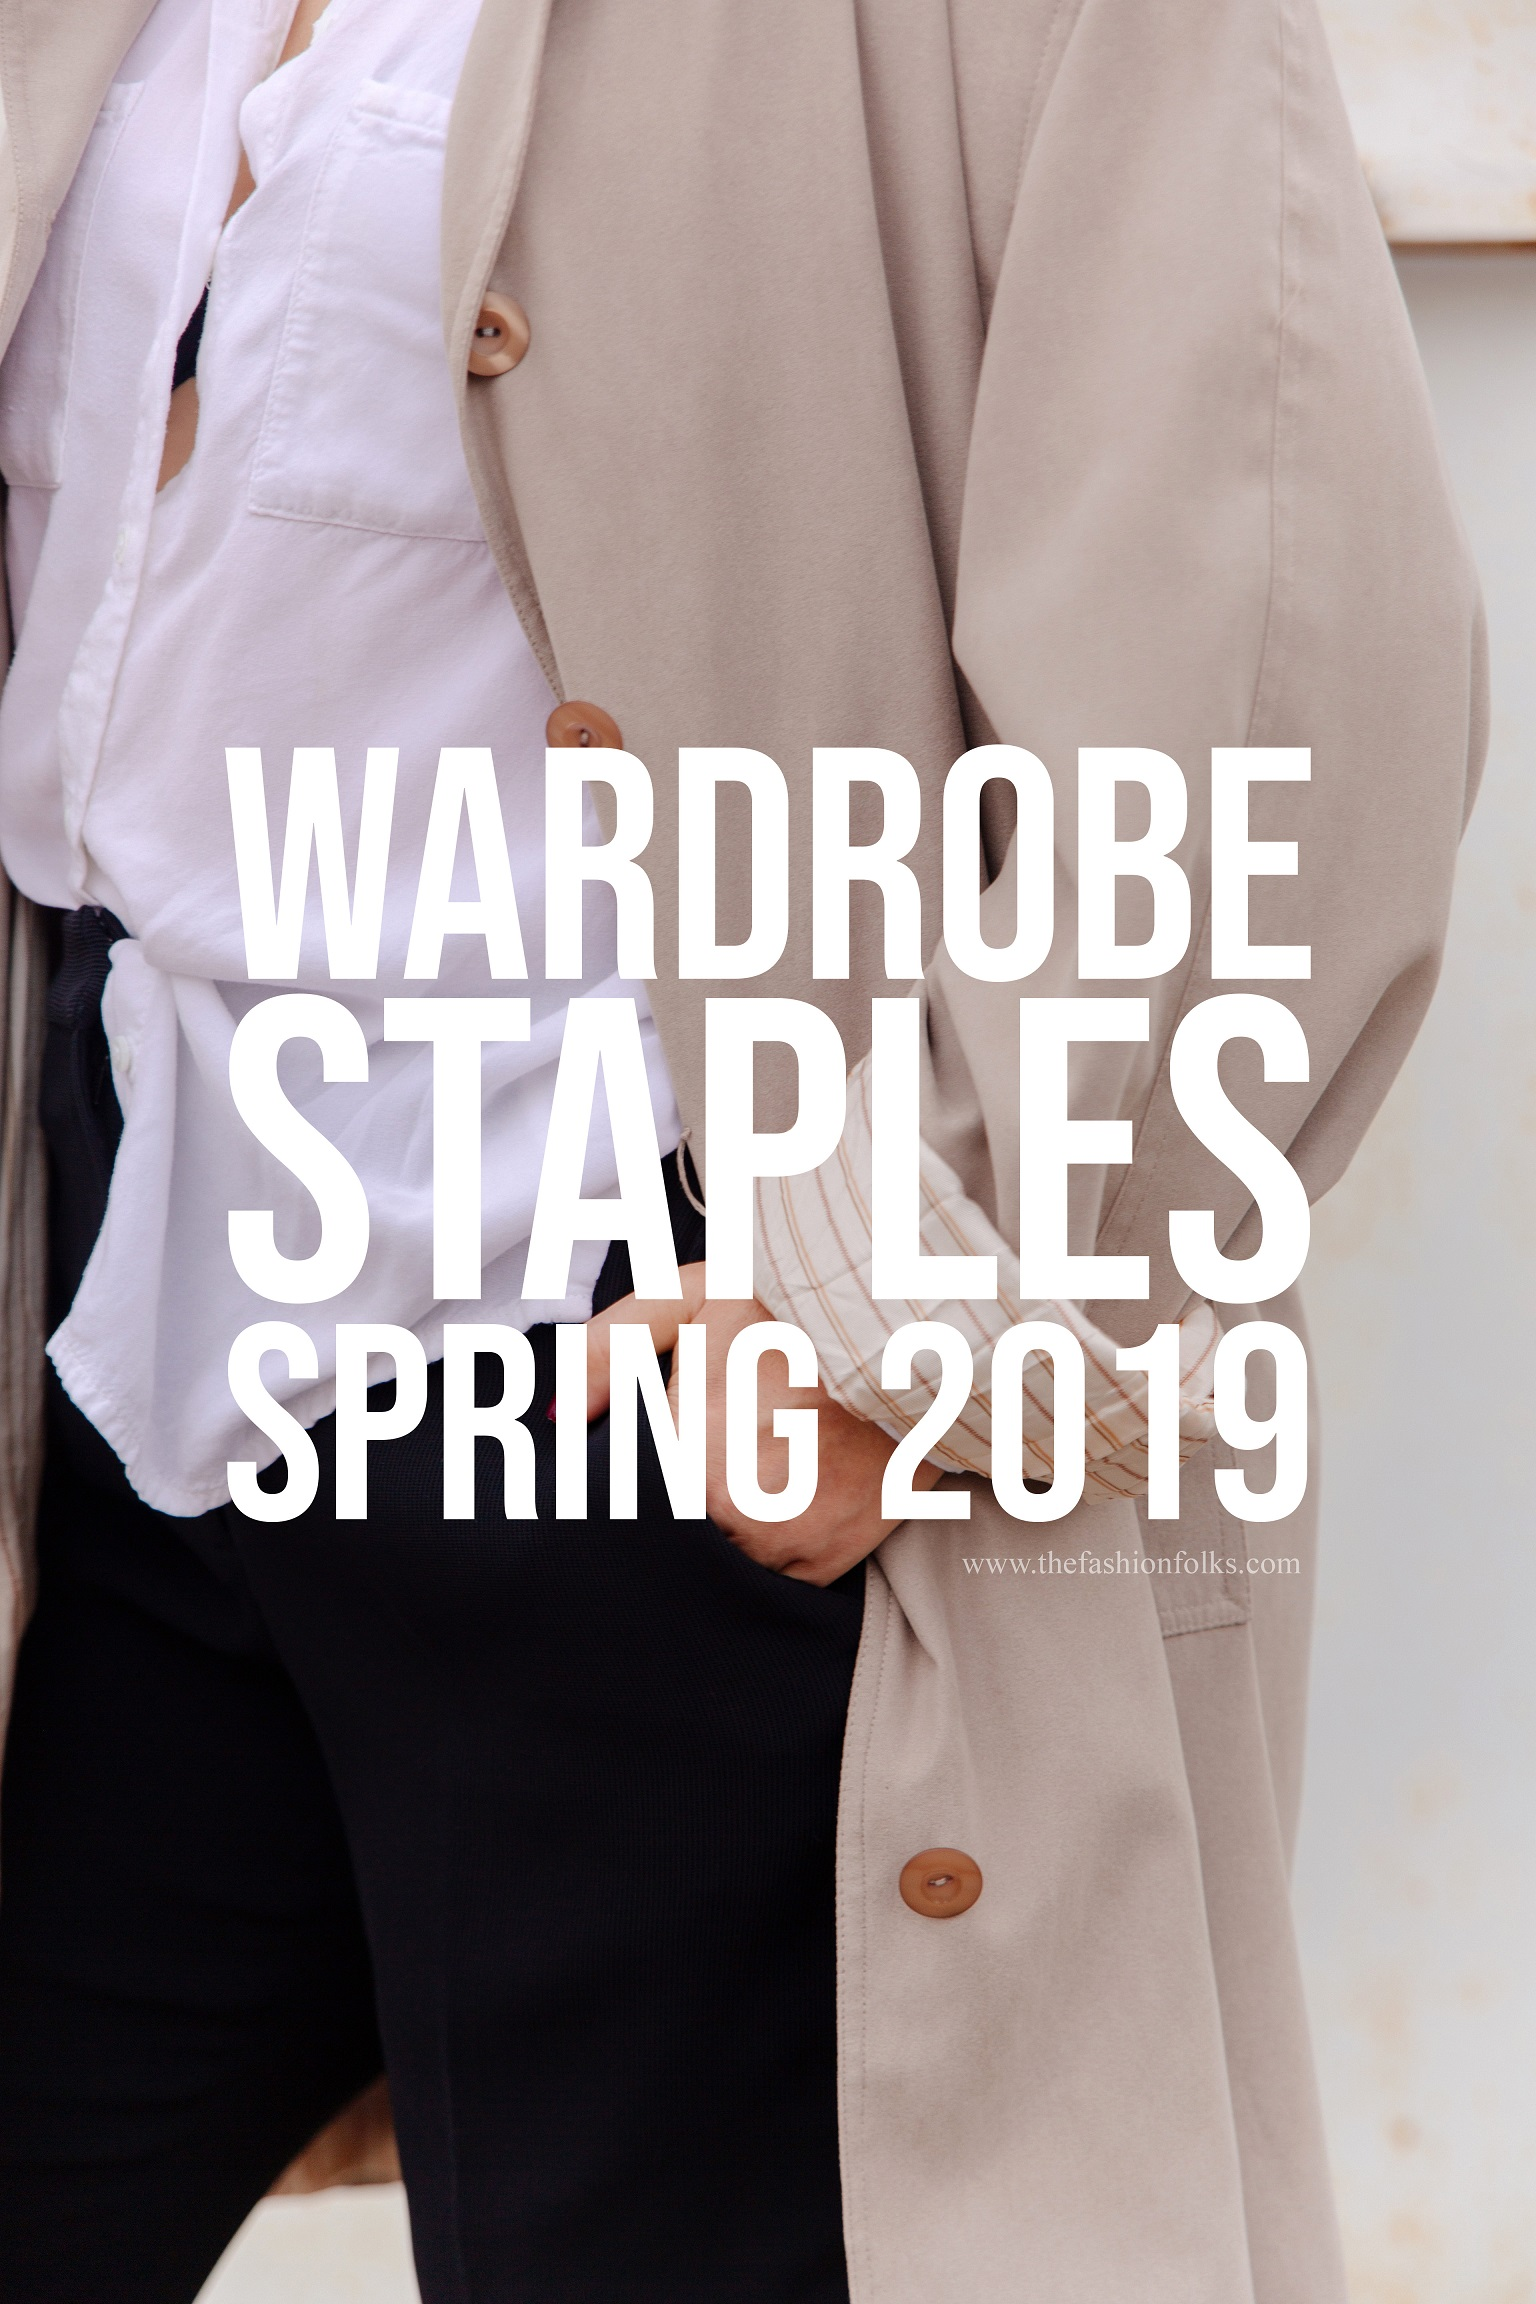 Wardrobe Staples Spring 2019 Menswear Fashion trends 2019 Womenswear fashion trends 2019